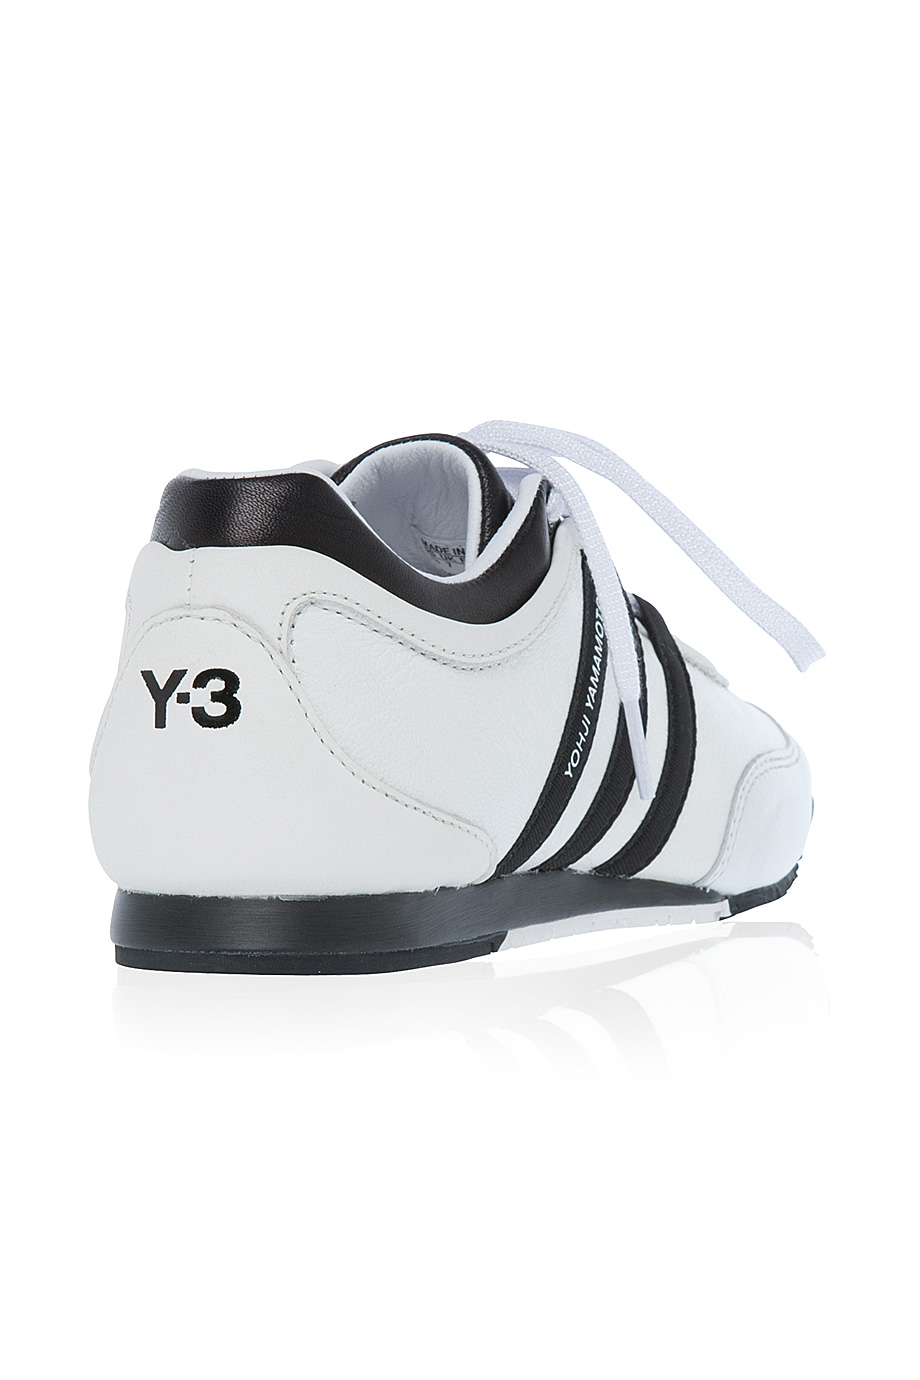 565cbc1eaae7d Lyst - Y-3 Y3 Boxing Trainer in White for Men